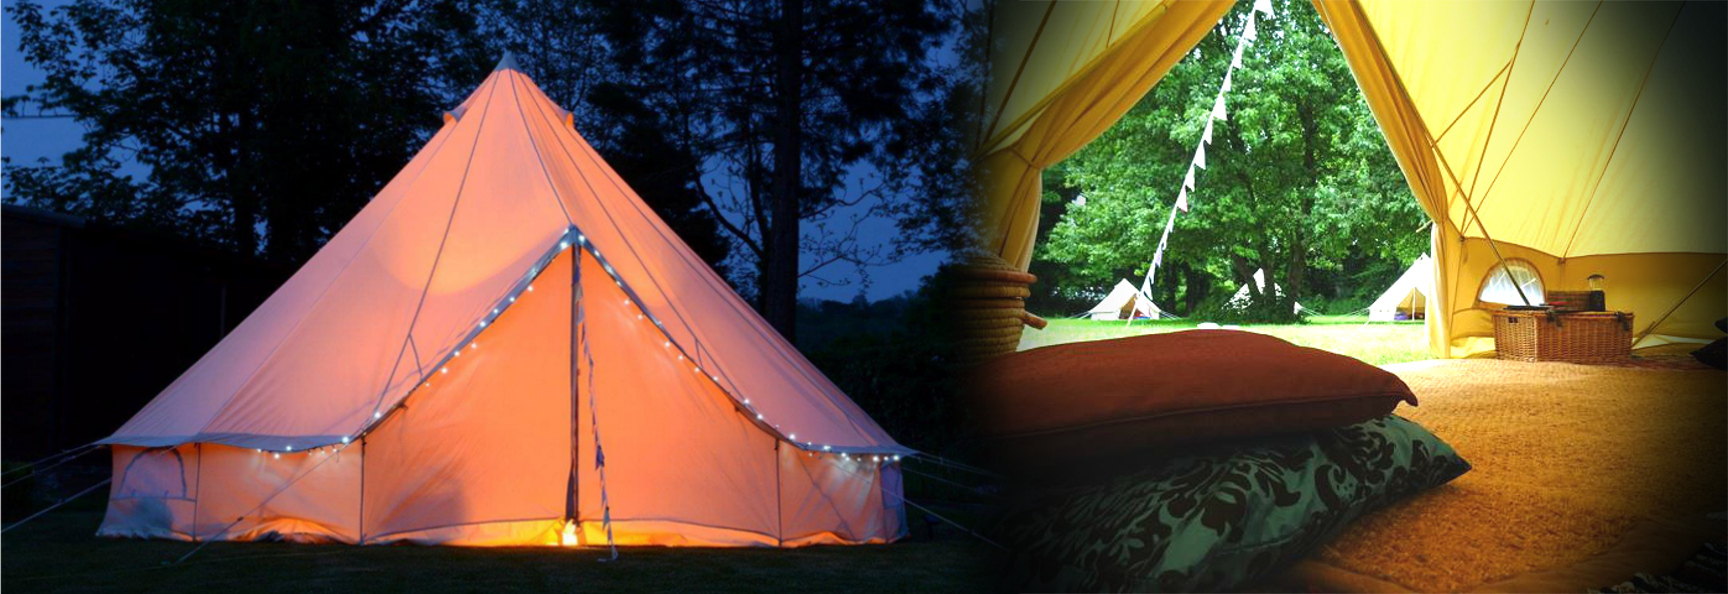 Edinburgh Festival Camping and Glamping Village Luxury Bell Tent slider